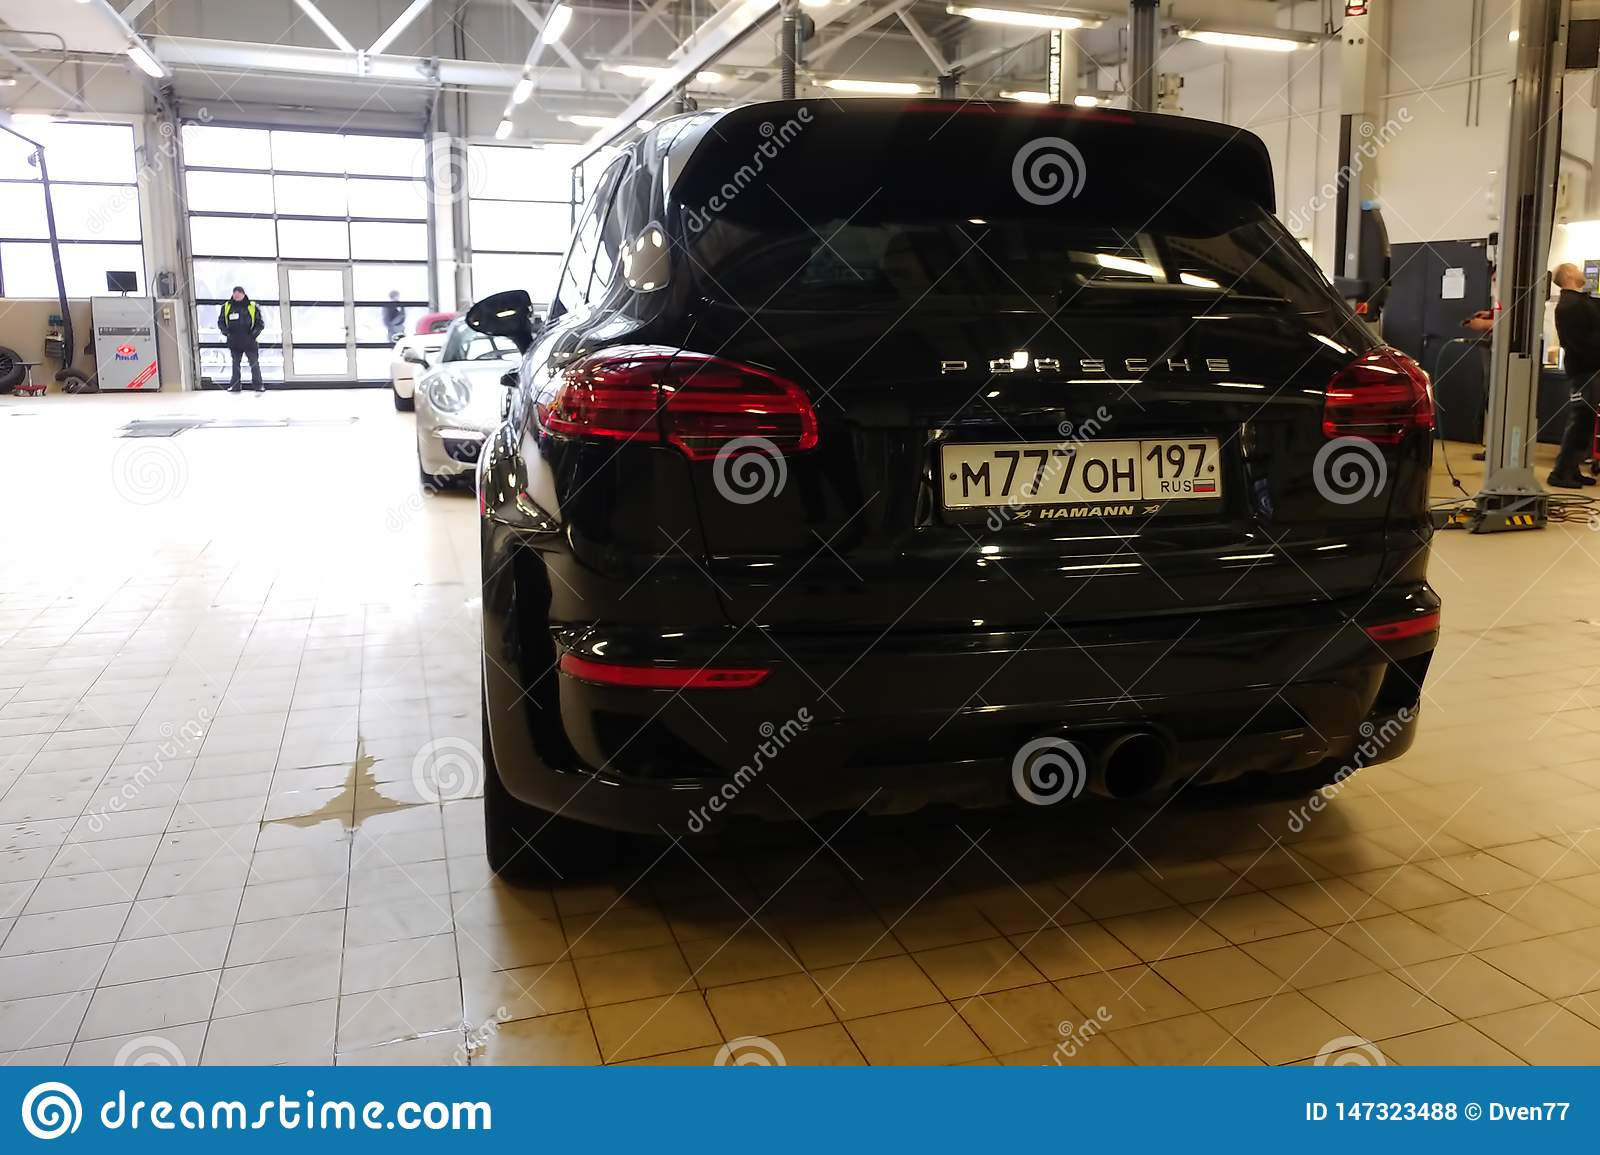 Moscow Russia April 30 2019 Tuned And Super Wide Black Porsche Cayenne In Service Center Modified By Hamann With Exclusive Editorial Stock Photo Image Of Custom Repair 147323488